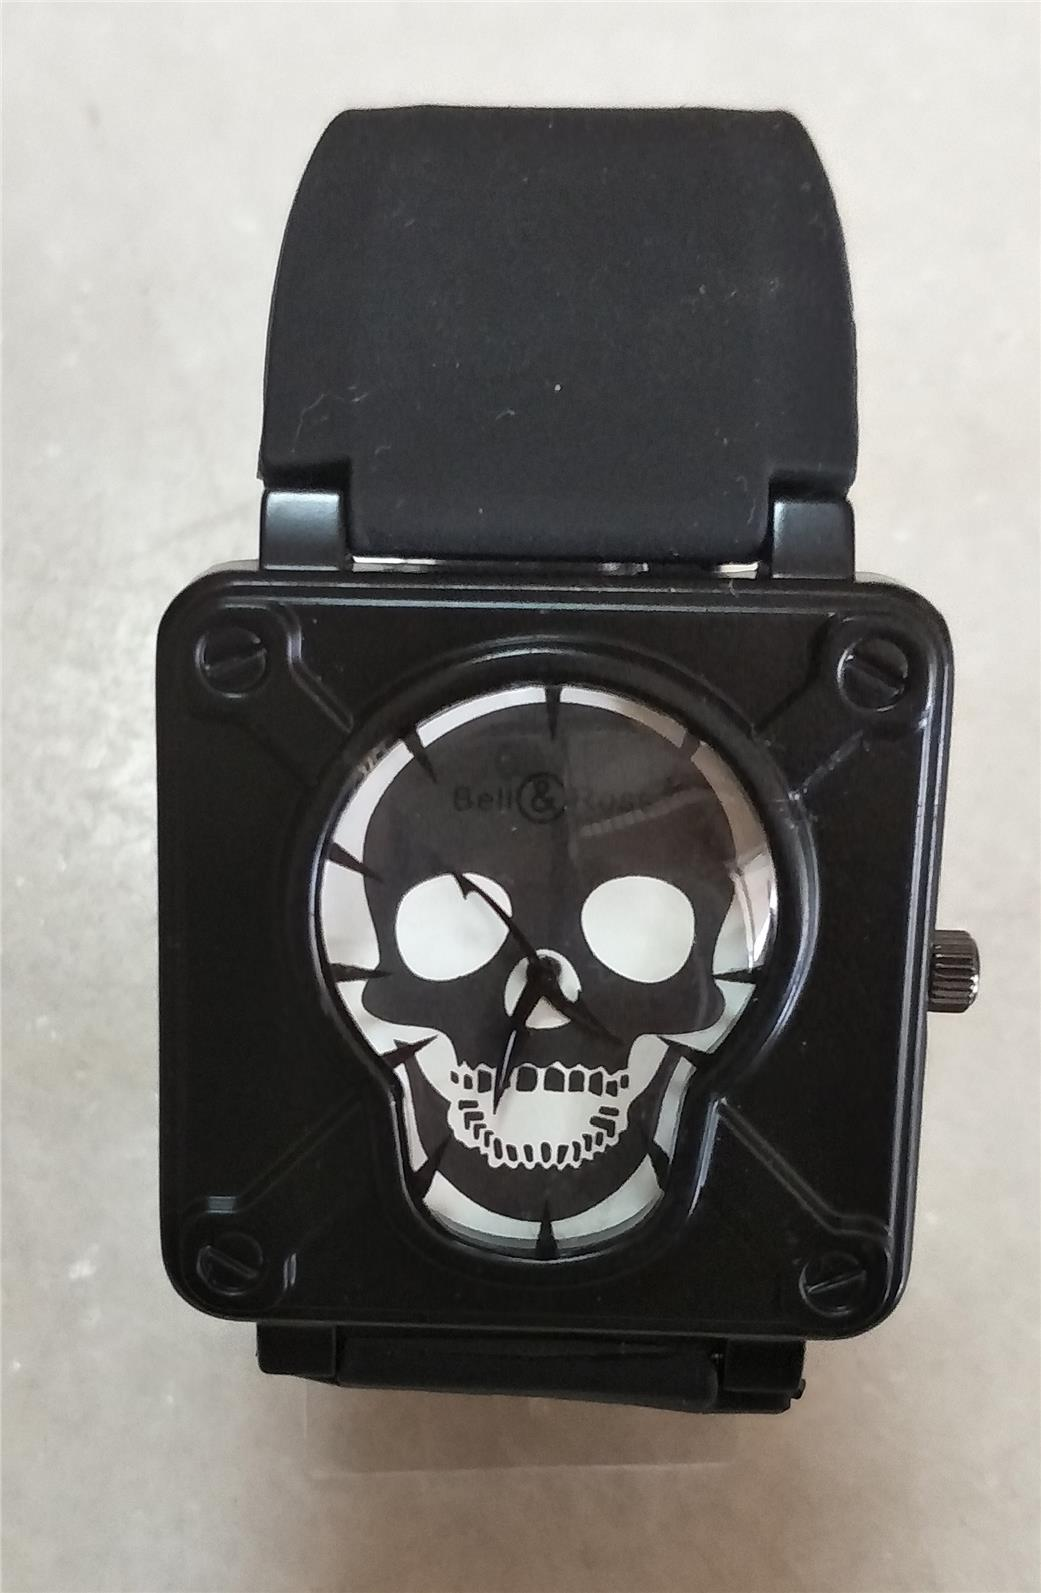 WATCH WITH UNIQUE DESIGN. ( BLACK )